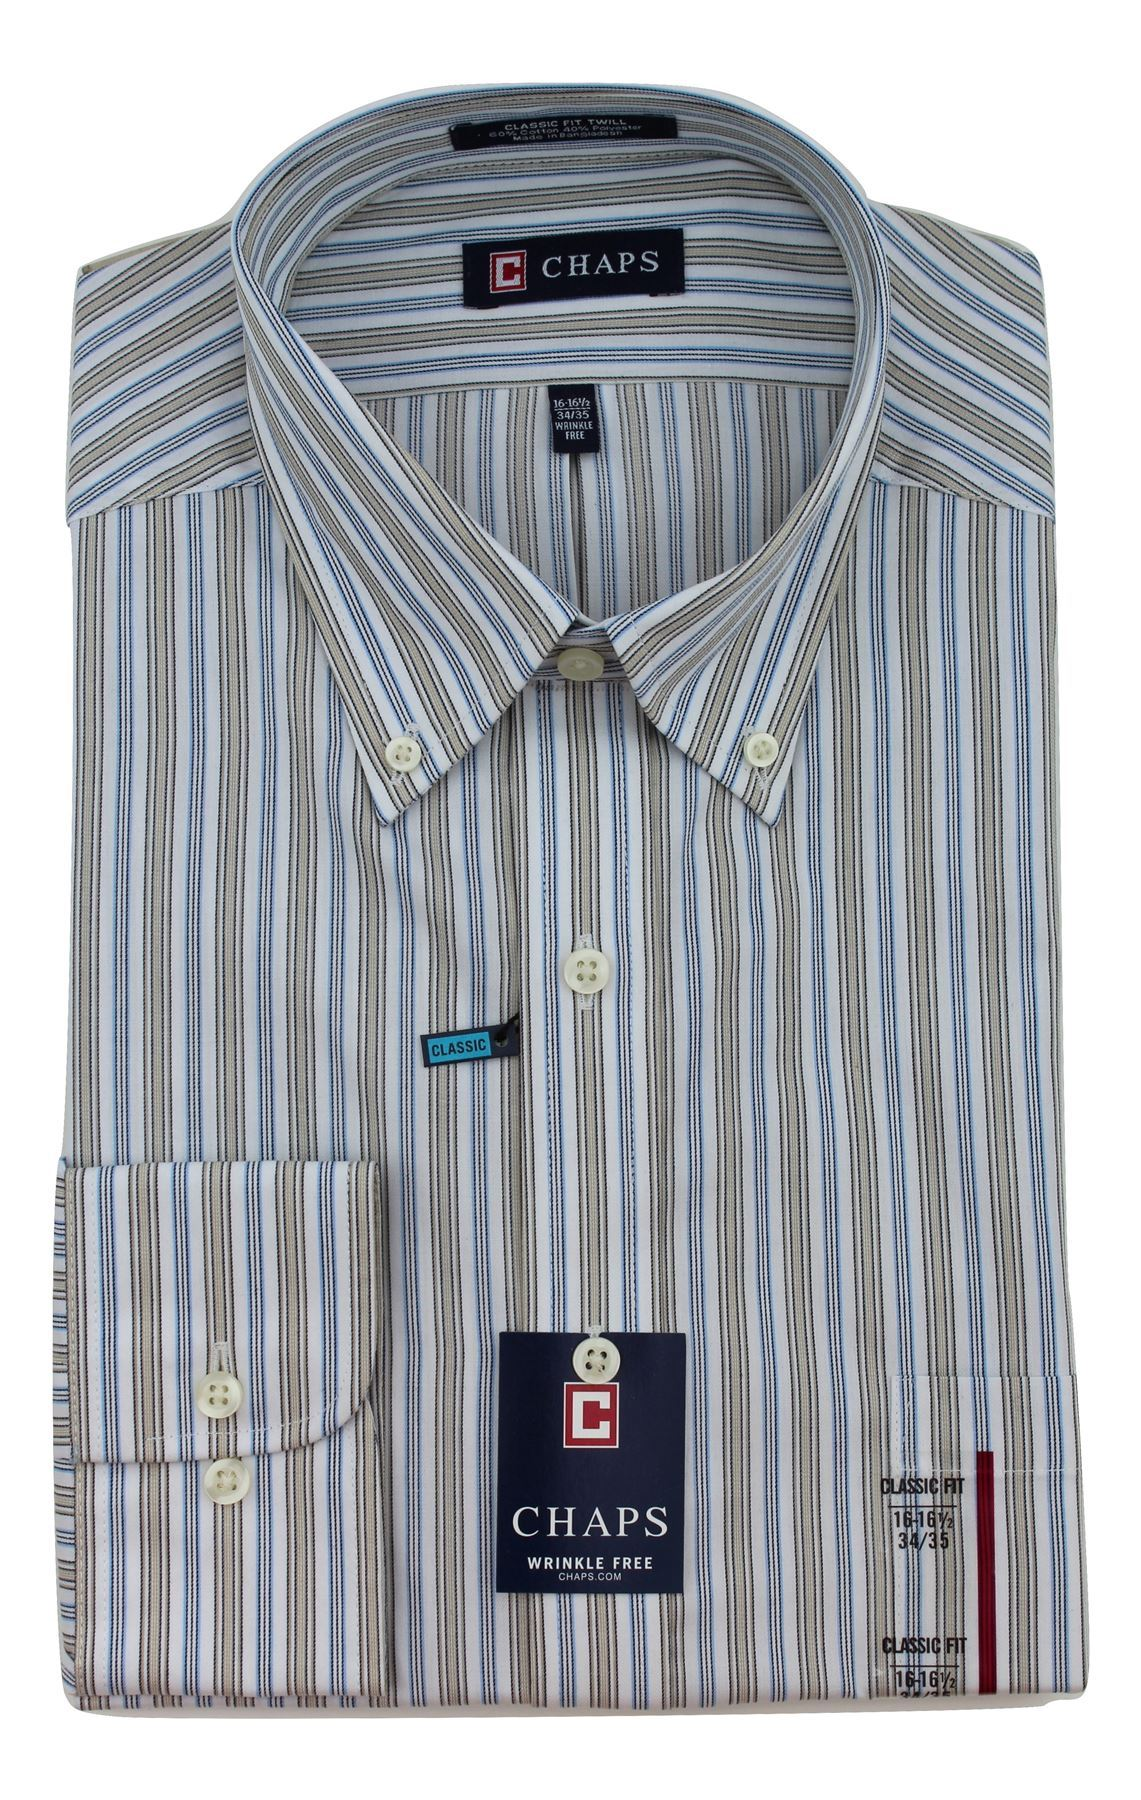 Easy Iron 25 Mg: Mens Shirt CHAPS Cotton Blend Easy Iron Long Sleeve